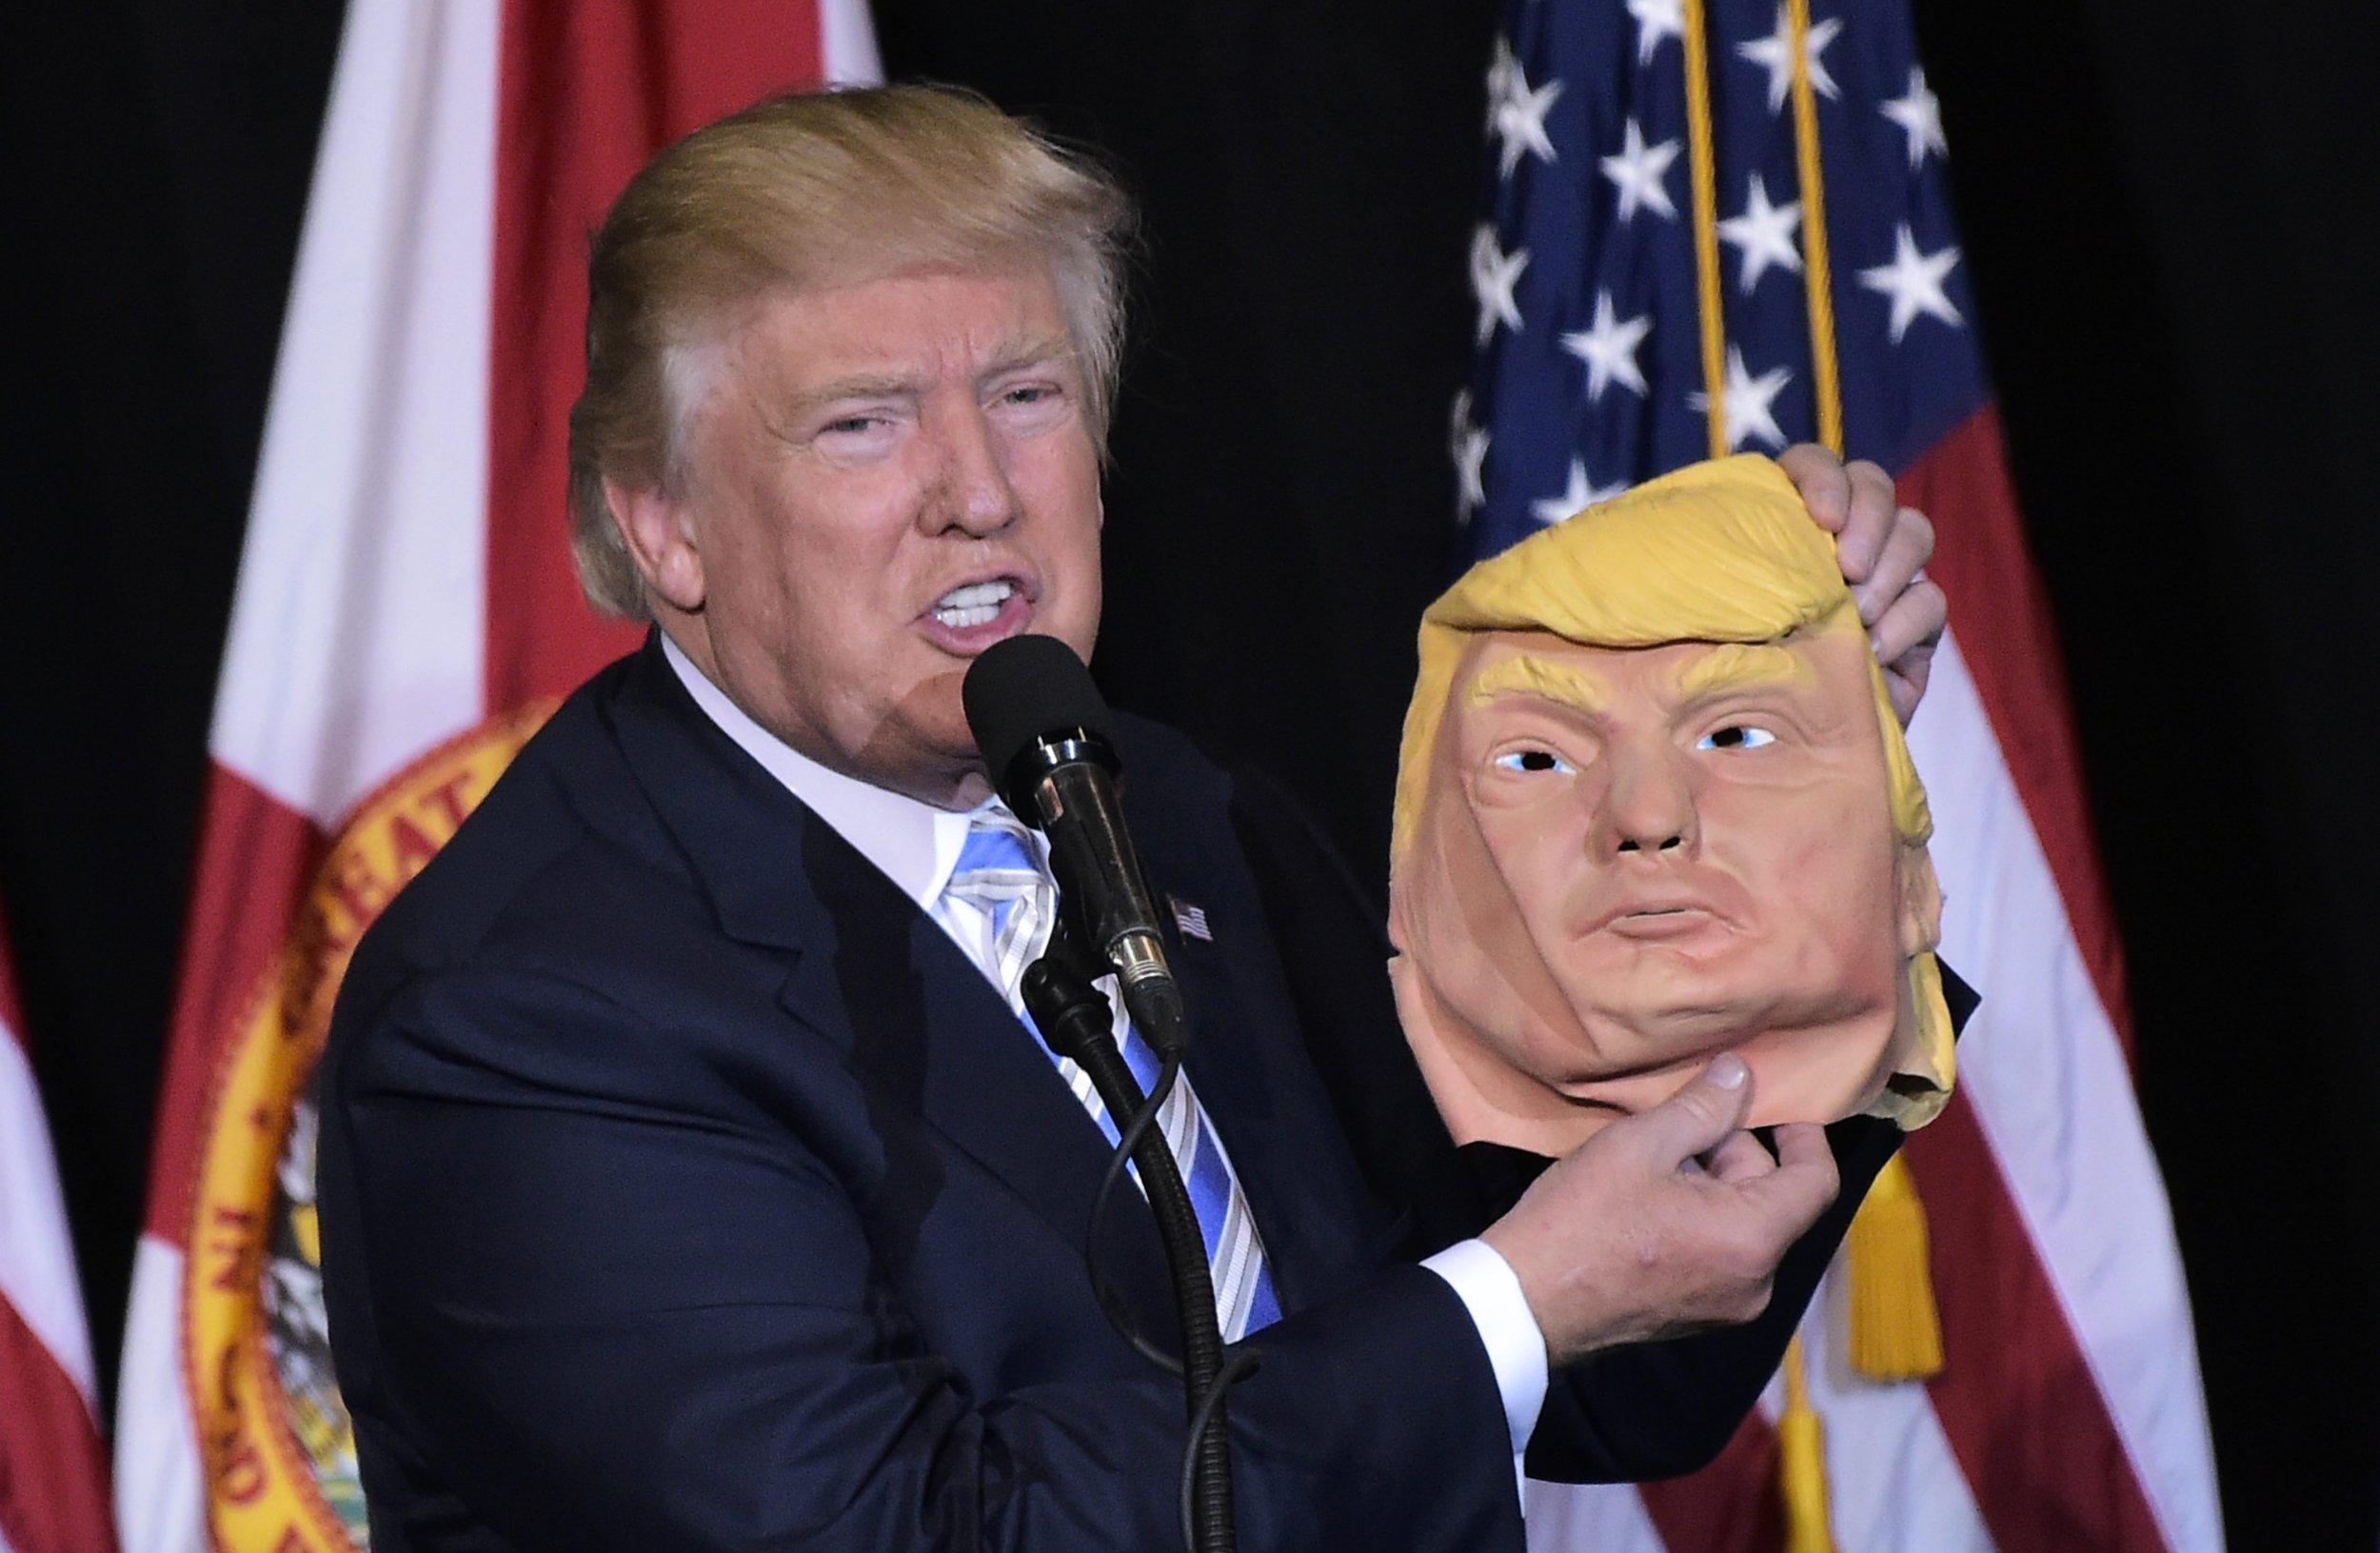 Donald Trump Jr. Offers Hillary Clinton Mask of His Dad so She Can ...